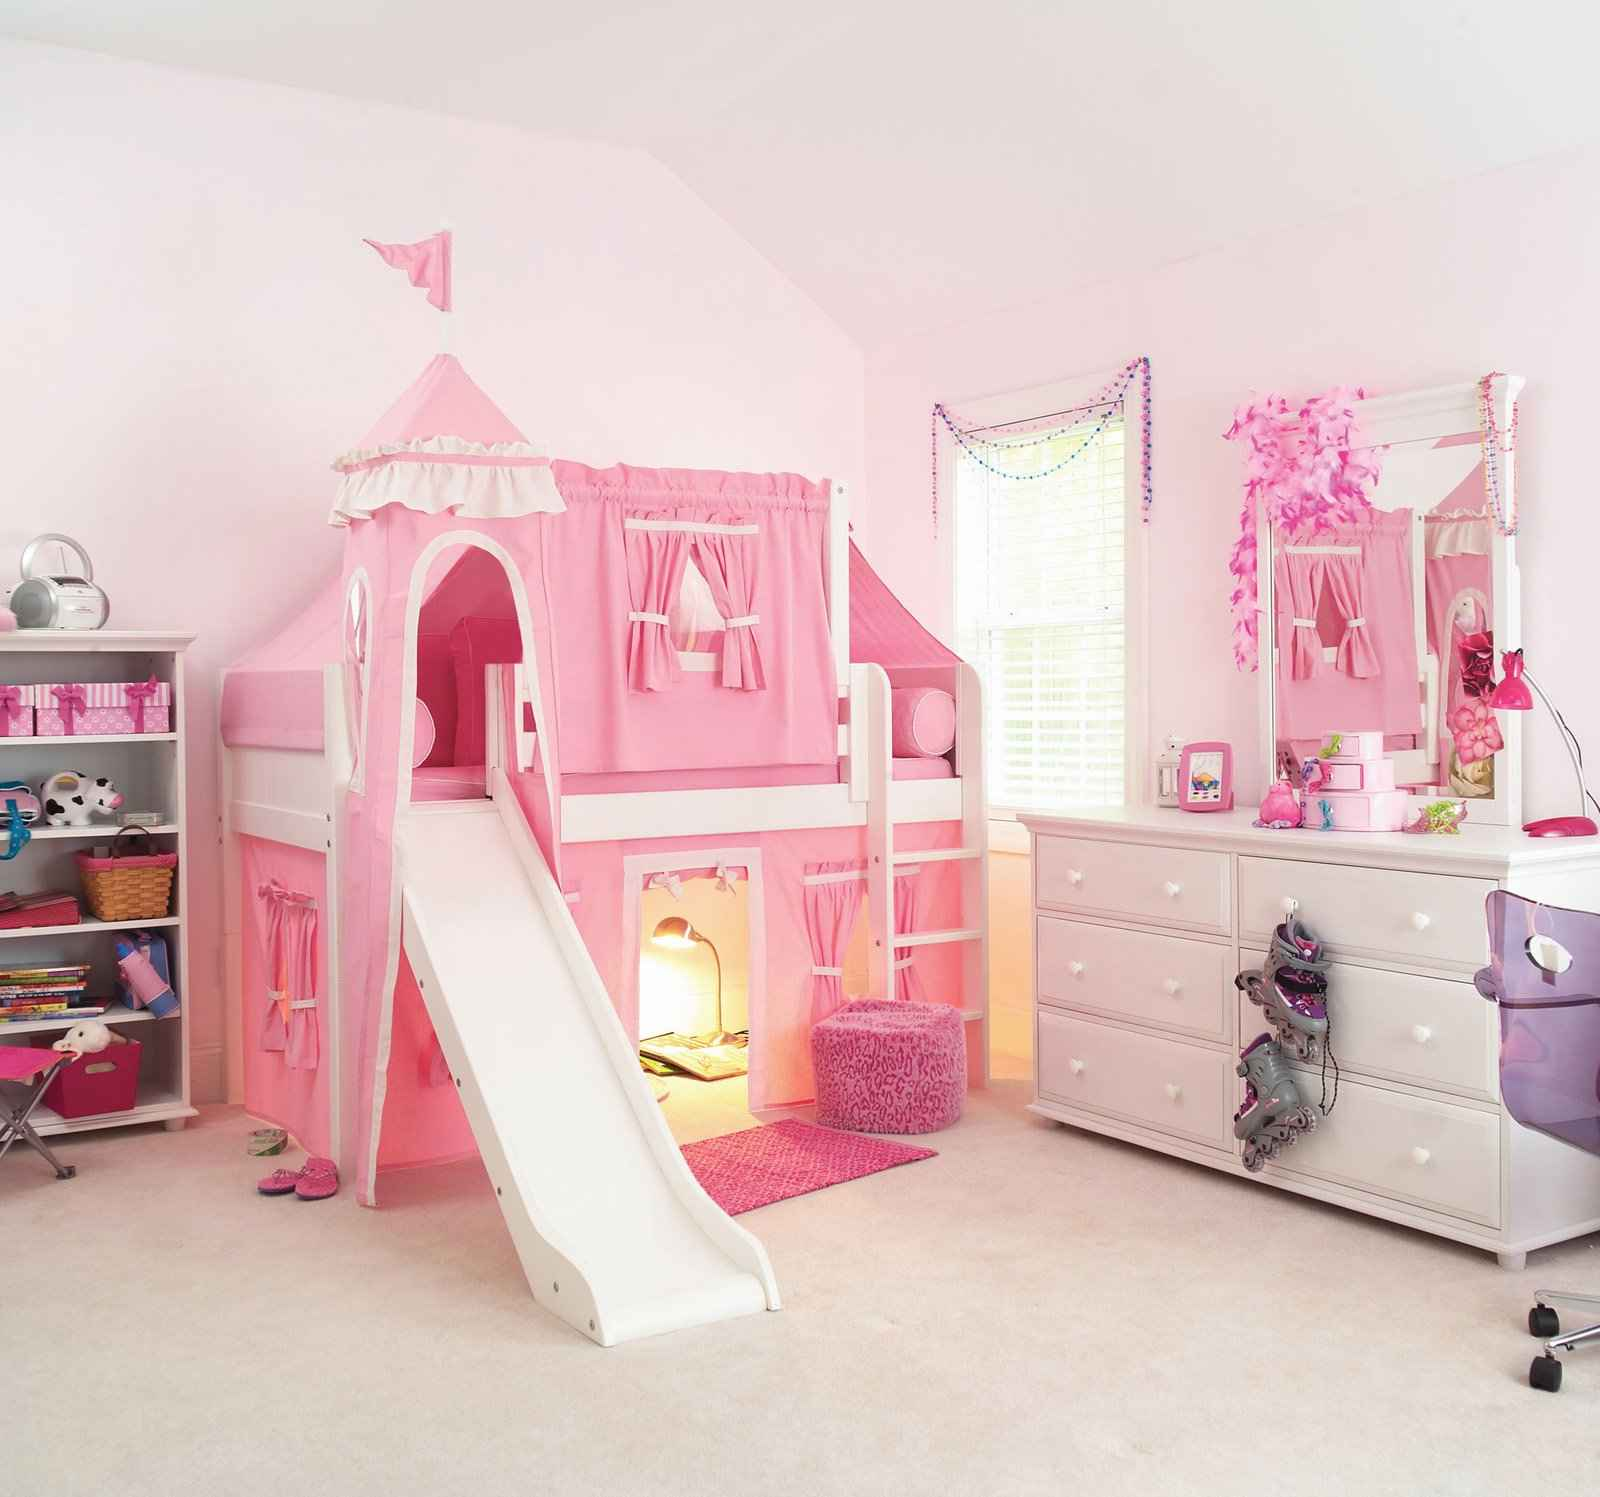 Girly Princess Bedroom Ideas: Girls Castle Loft Bed